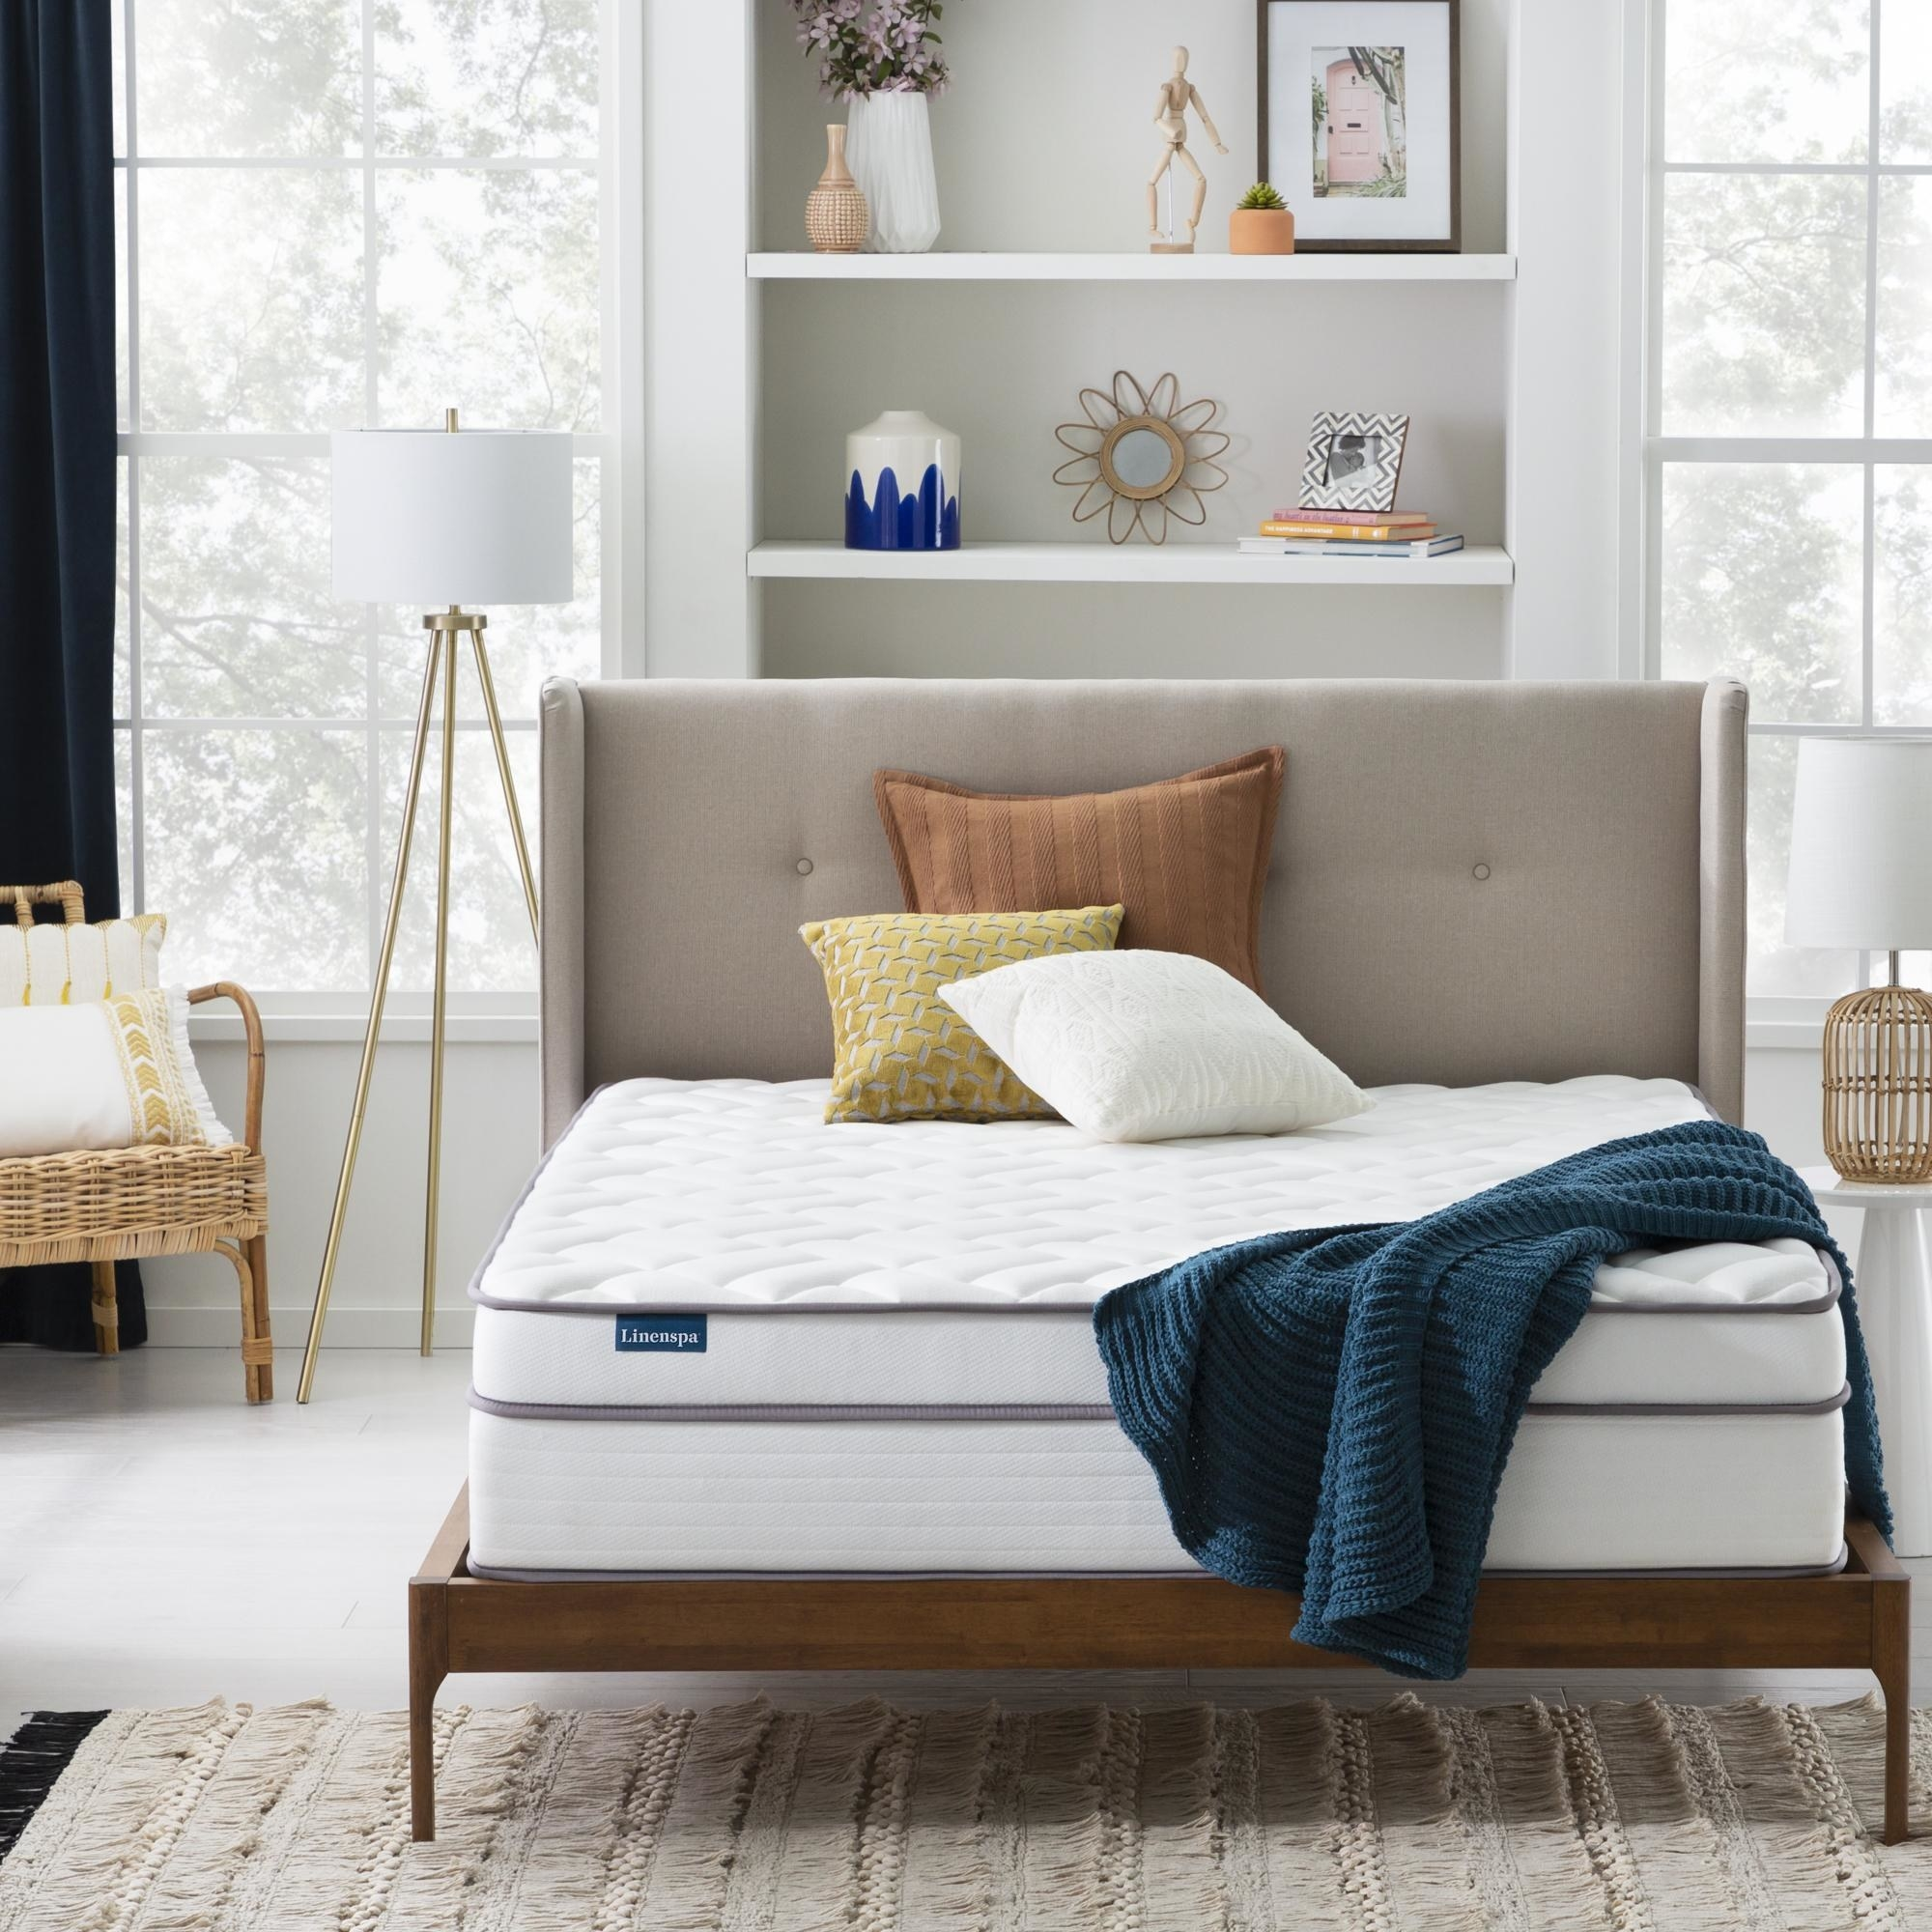 white gel memory foam hybrid mattress with pillows and a blanket on top